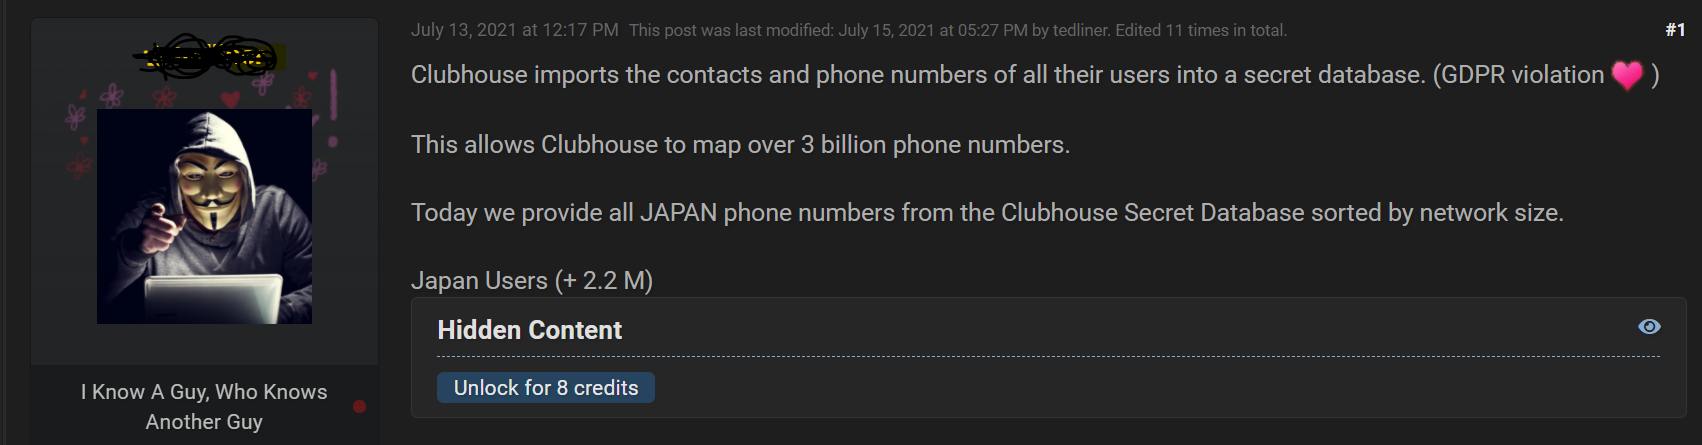 Threat actor offers Clubhouse secret database containing 3.8B phone numbers